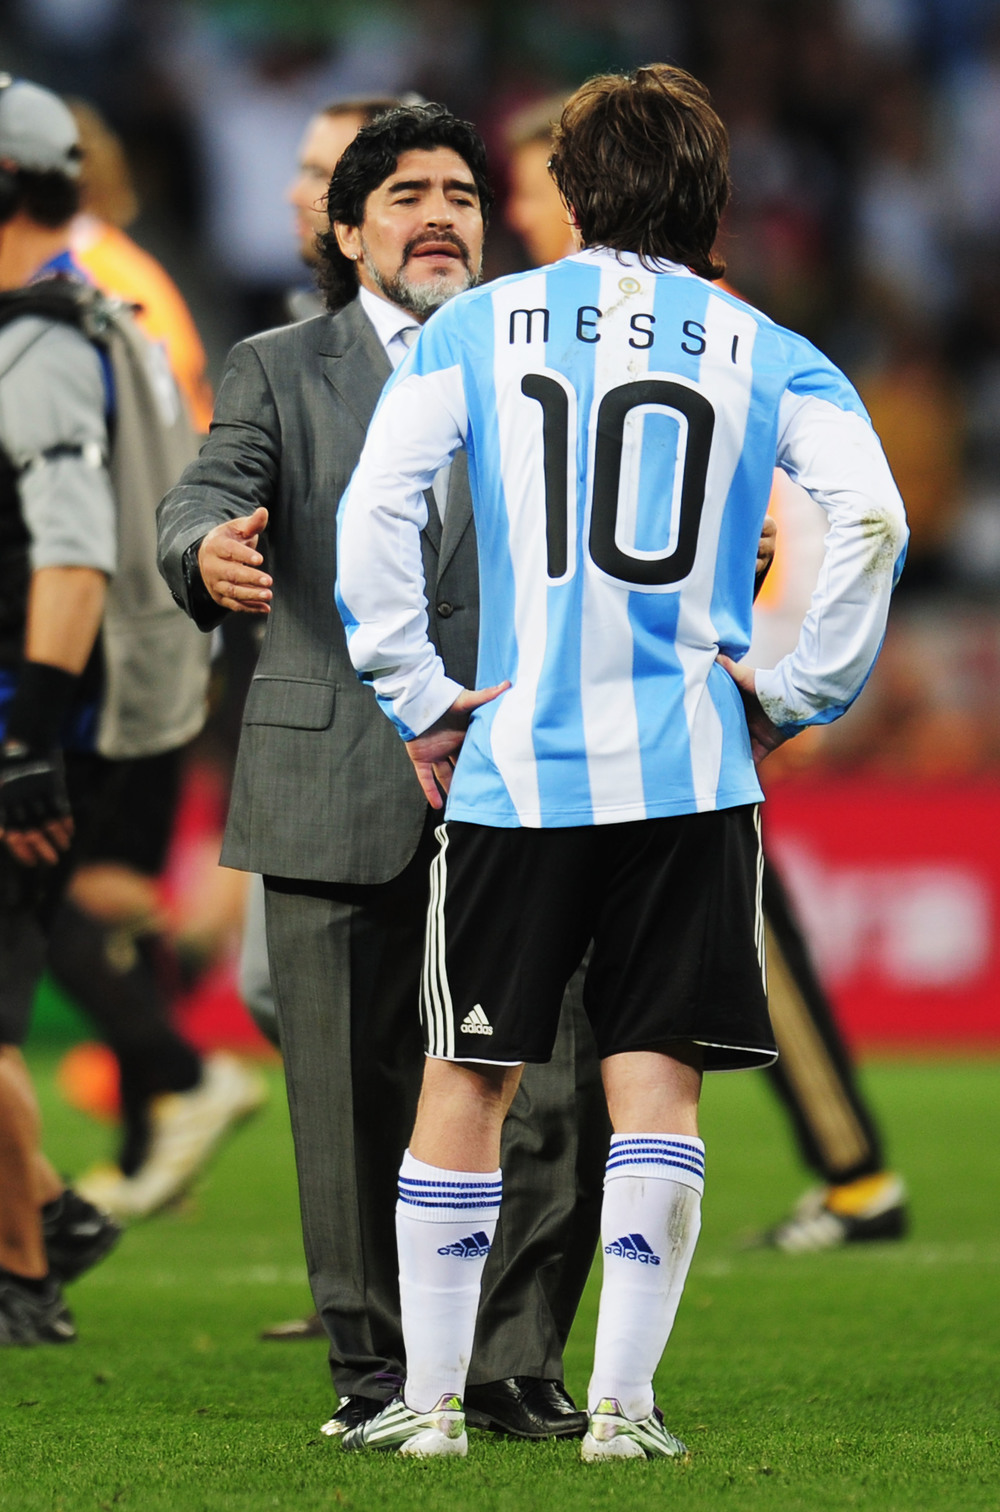 VM 2010 var Diego Maradona træner for Argentina og for Lionel Messi. Foto: Getty Images/Shaun Botterill